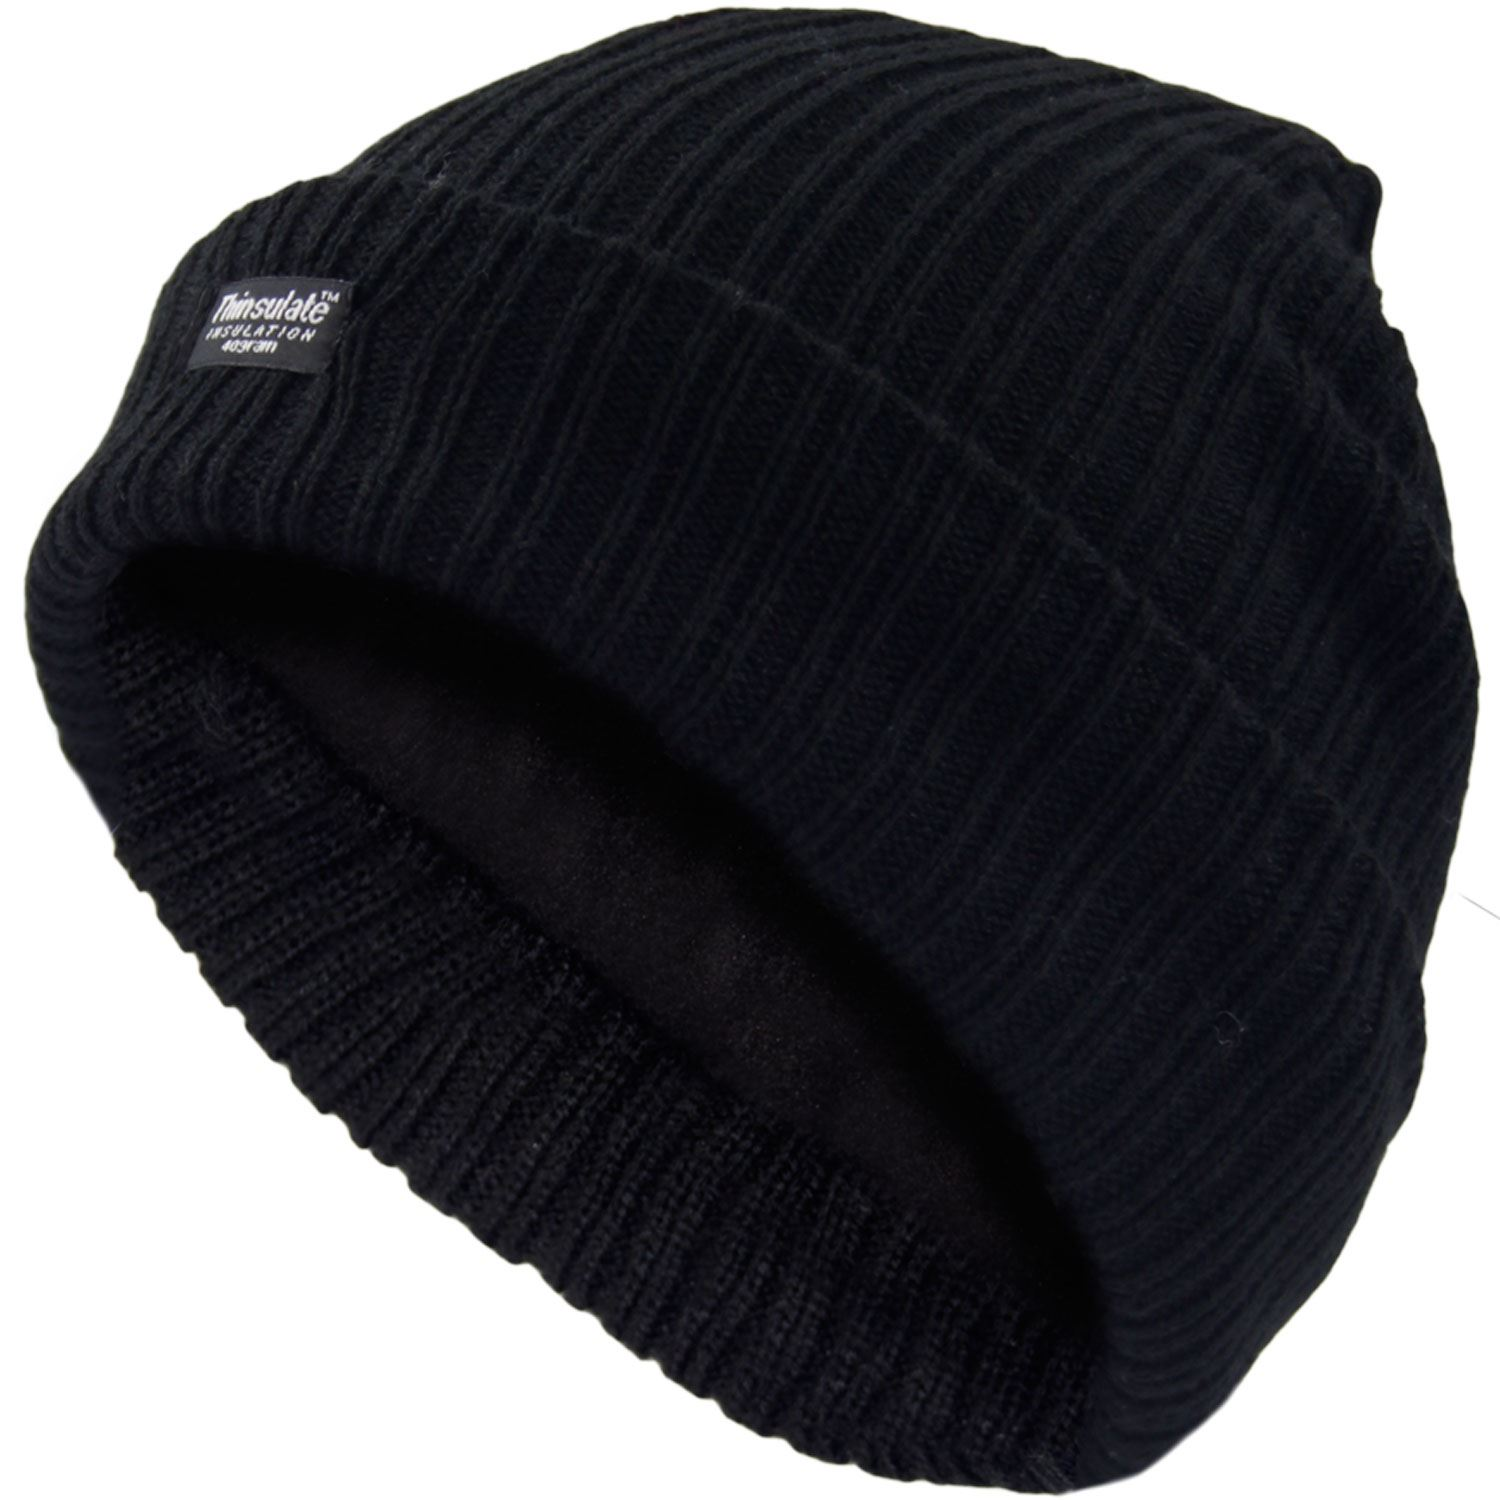 e703540e2 True Face Hats, Gloves & Scarves : New Ladies Fleece Lined Hat ...